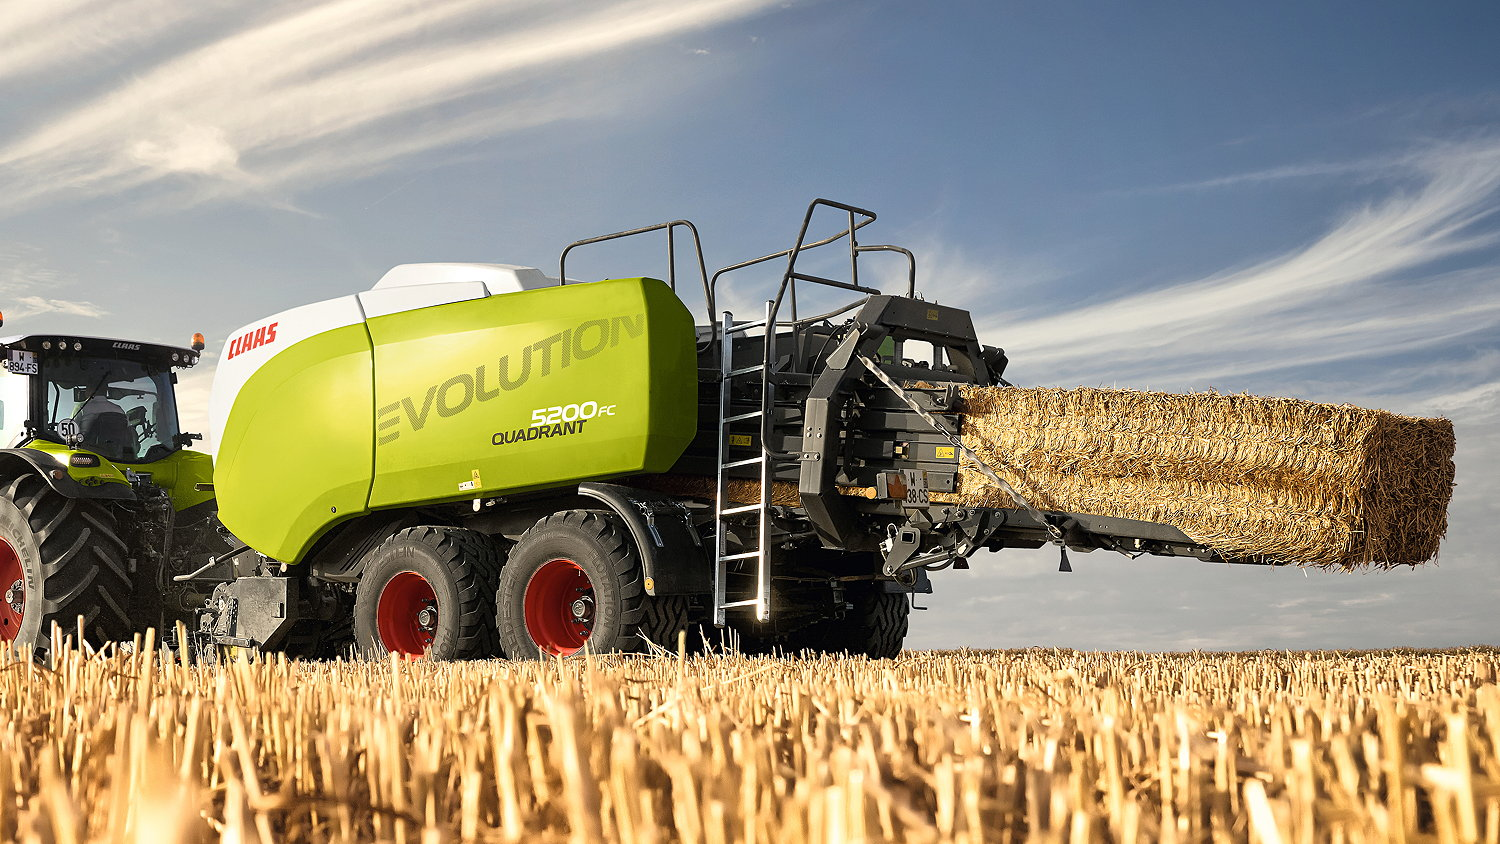 Claas has revamped its Quadrant balers for 2022